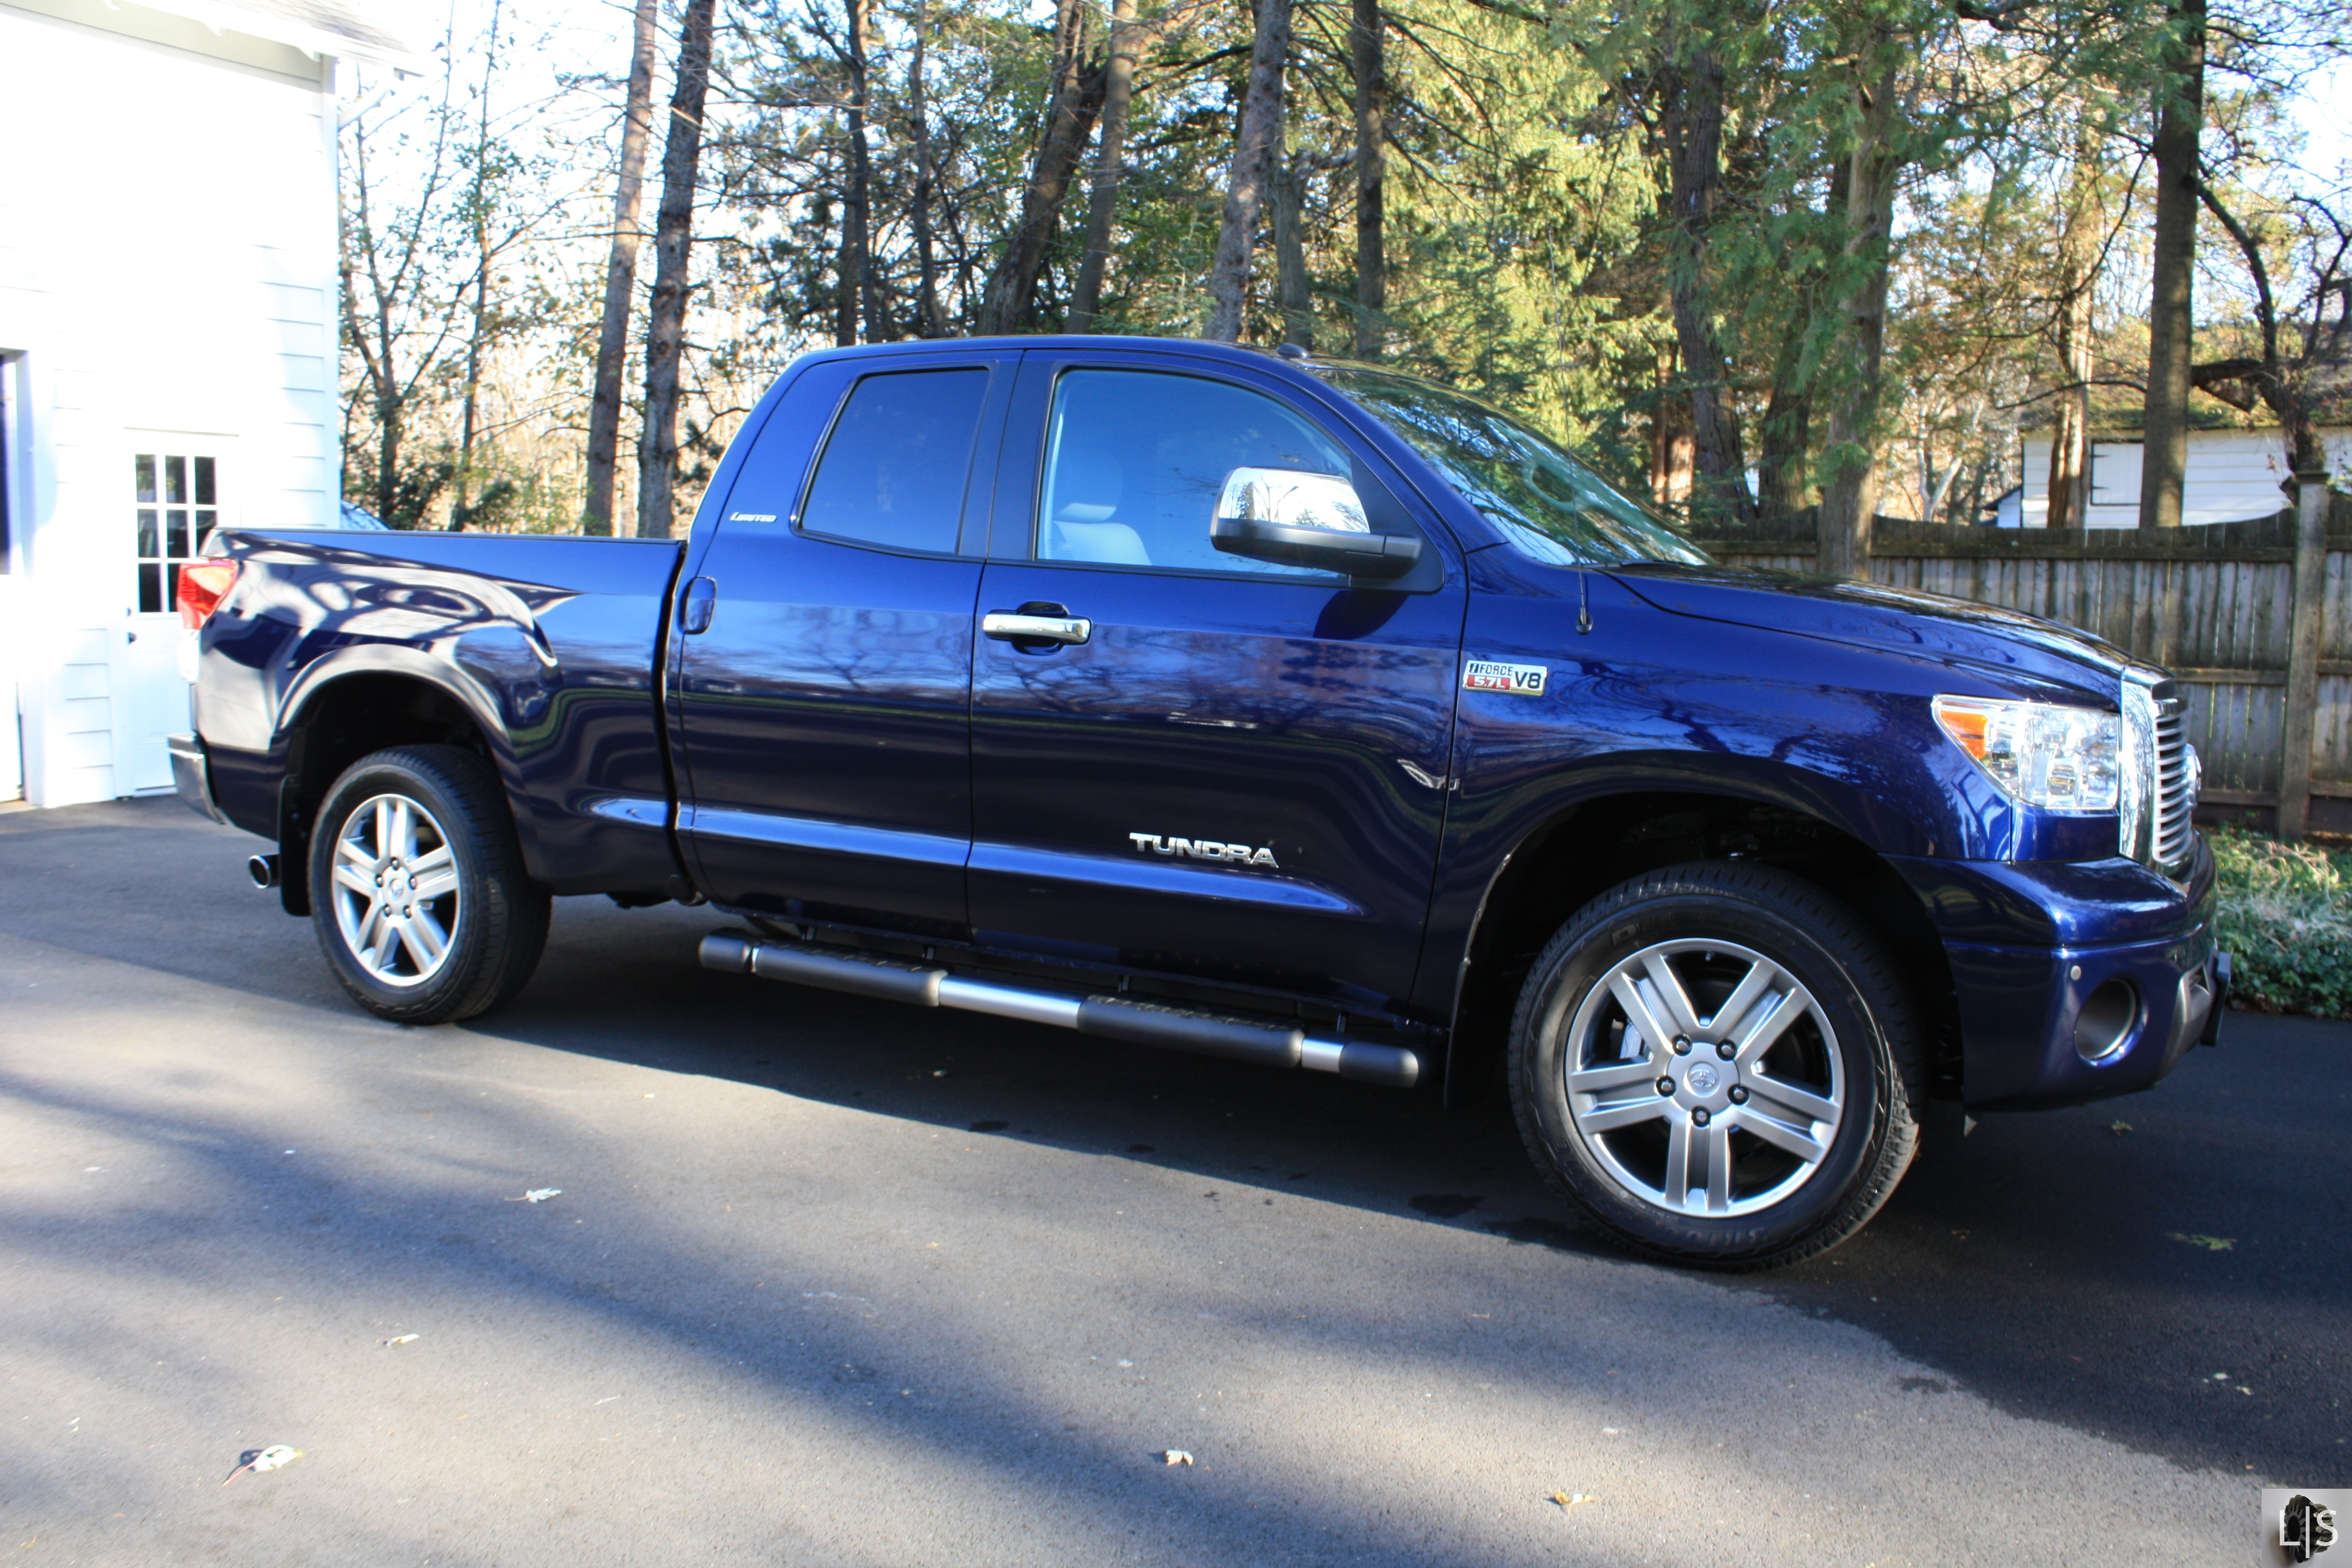 2018 Toyota Tundra Double Cab >> 2013 Toyota Tundra Limited: Two in One – Limited Slip Blog